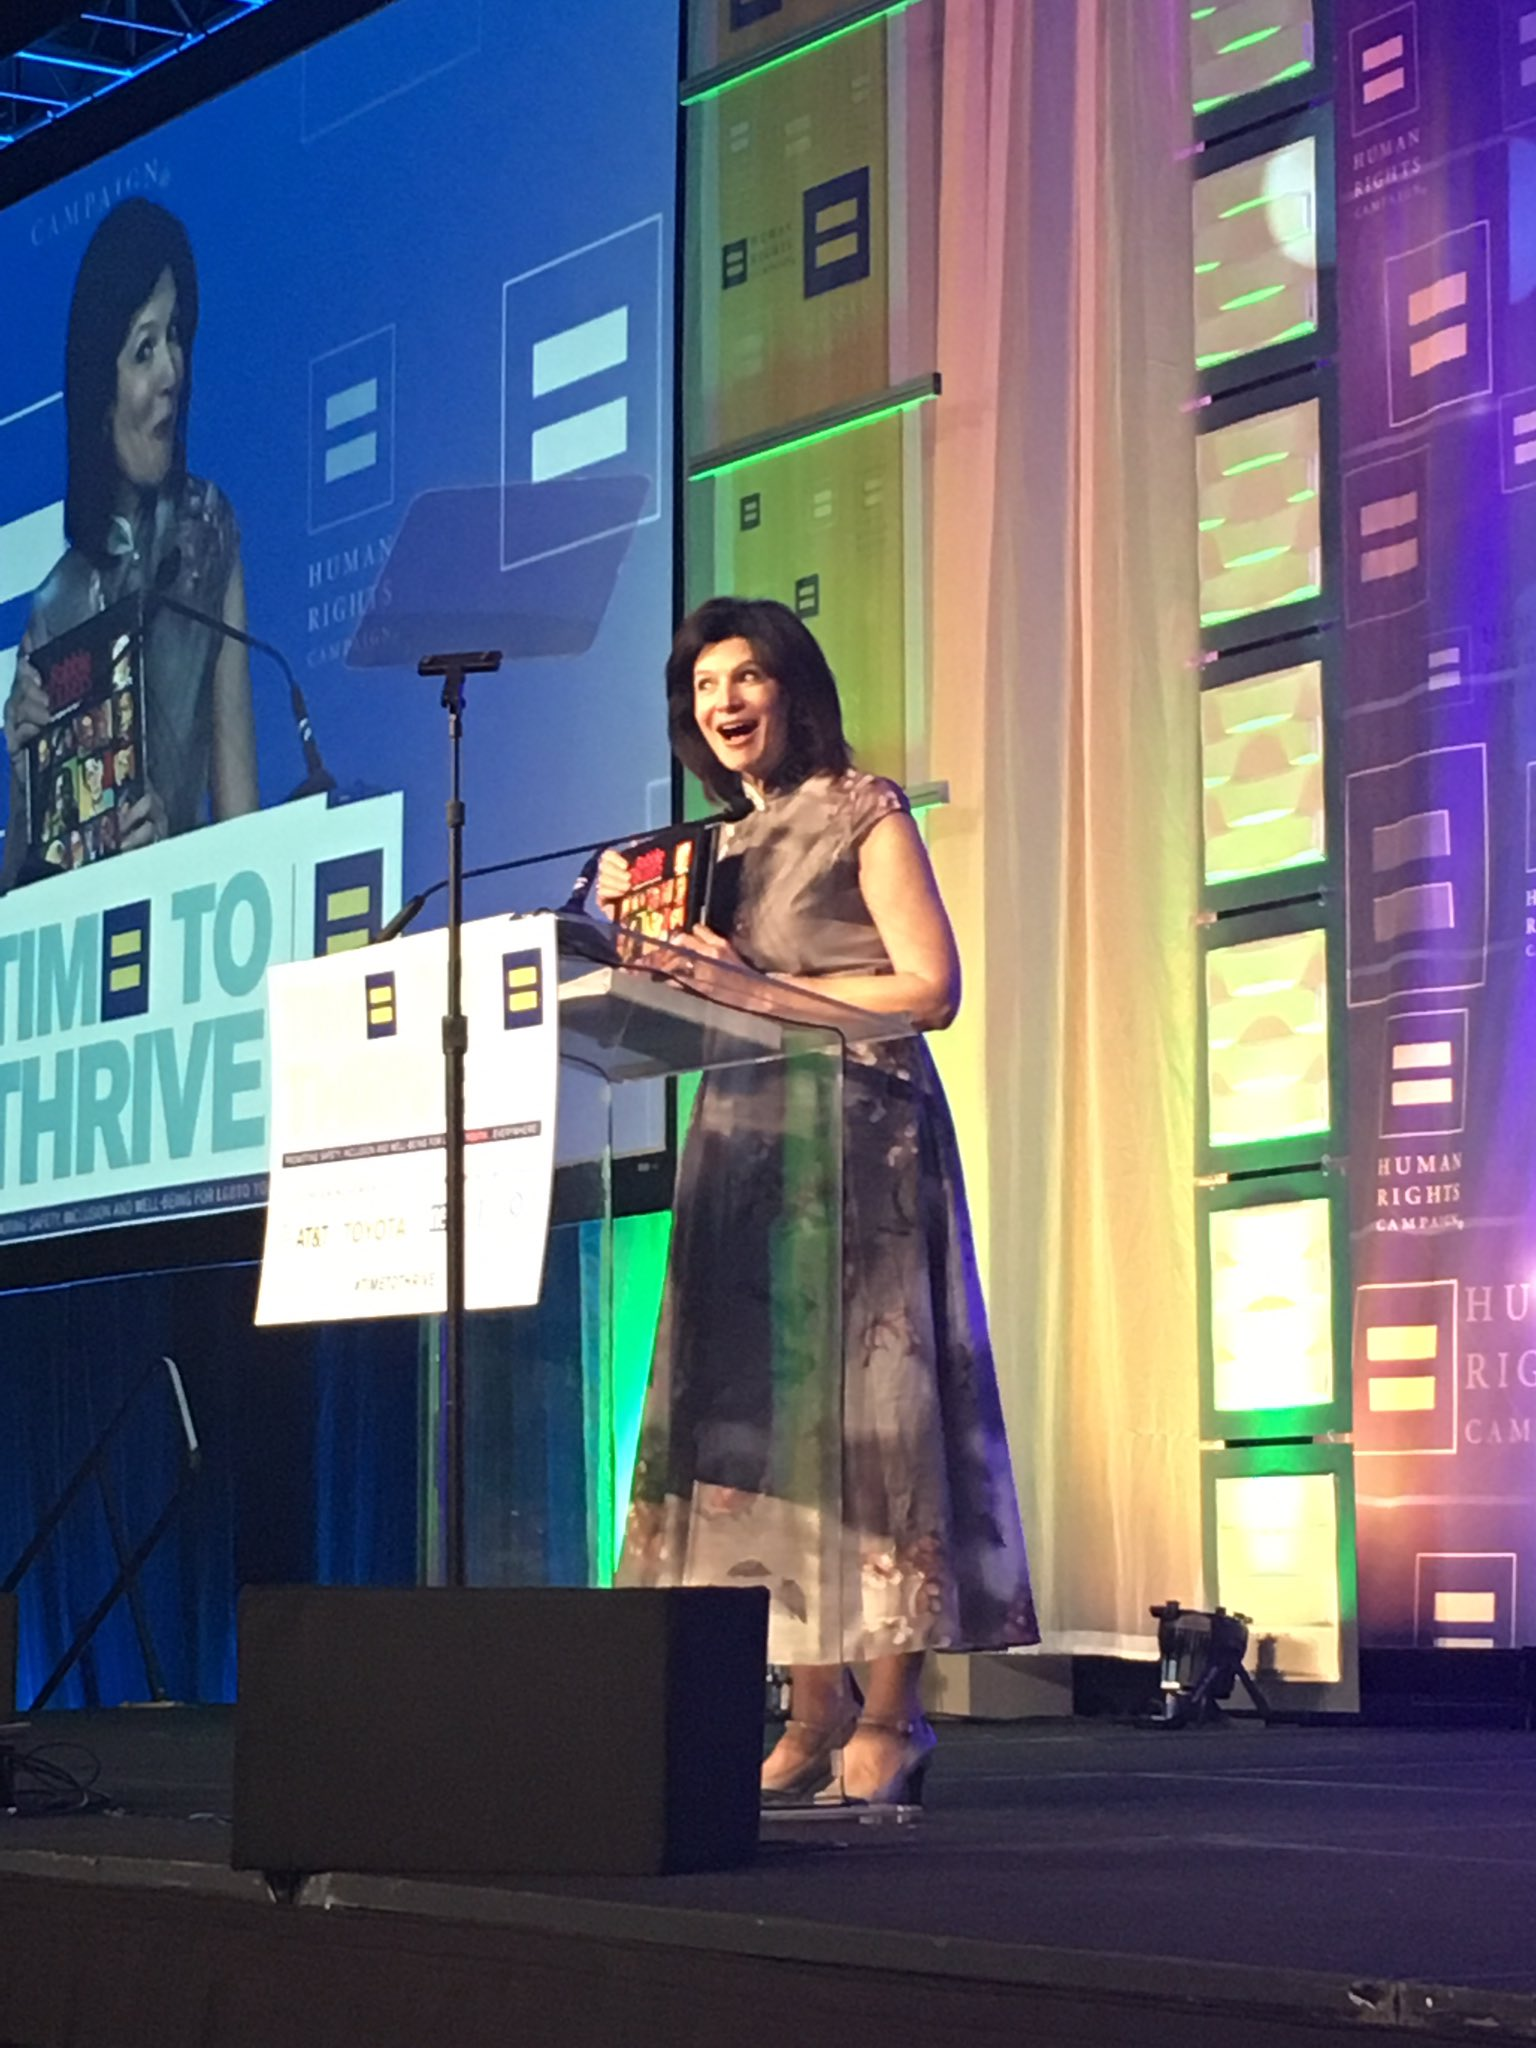 """#timetothrive """"We are social justice warriors. We will resist."""" https://t.co/NLccVDVNUi"""